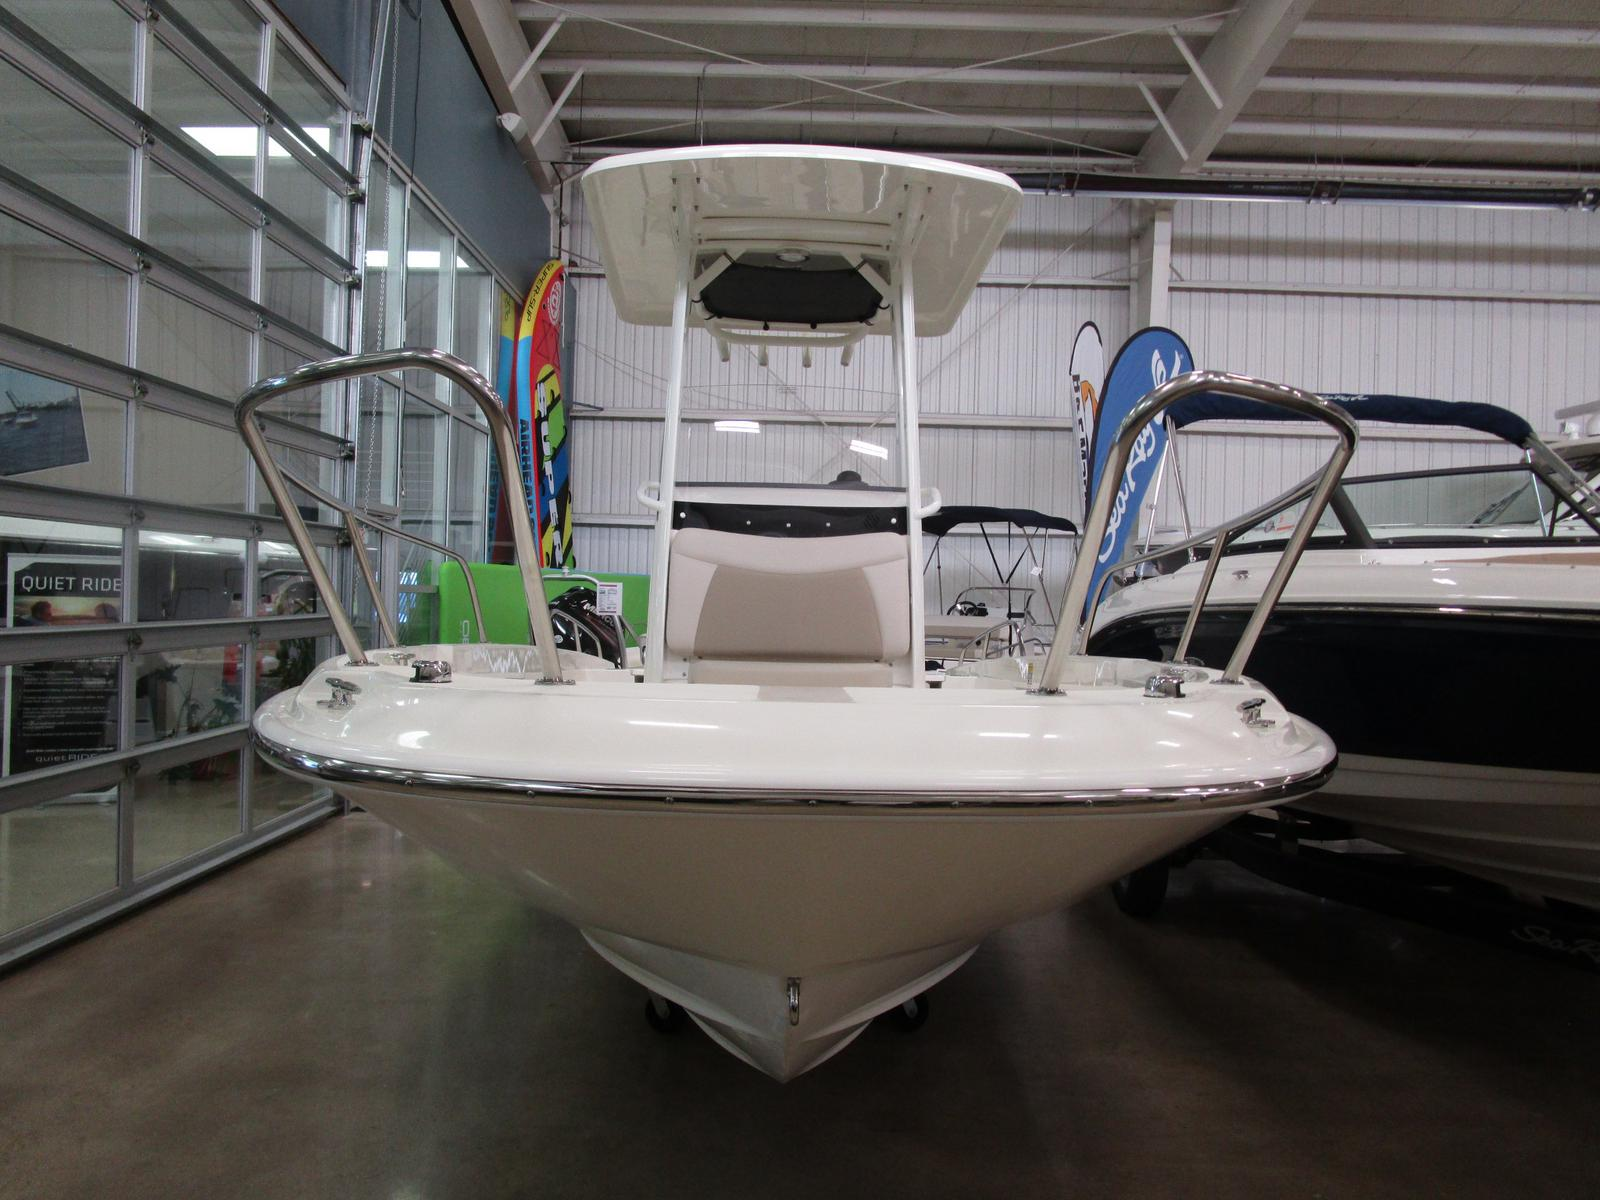 2019 Boston Whaler boat for sale, model of the boat is 210 Dauntless & Image # 2 of 7